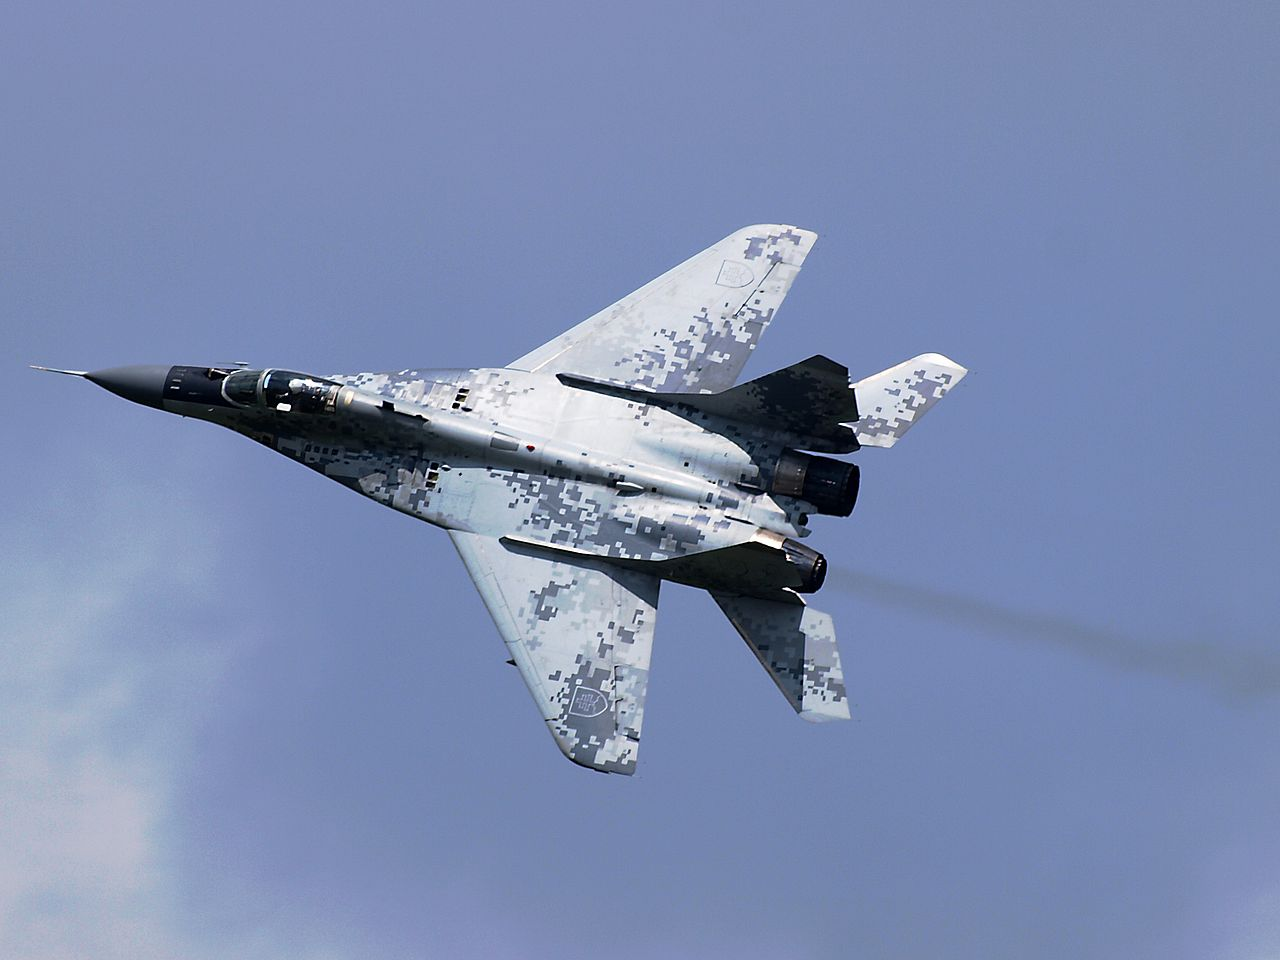 Mikoyan-Gourevitch MiG-29AS slovaque